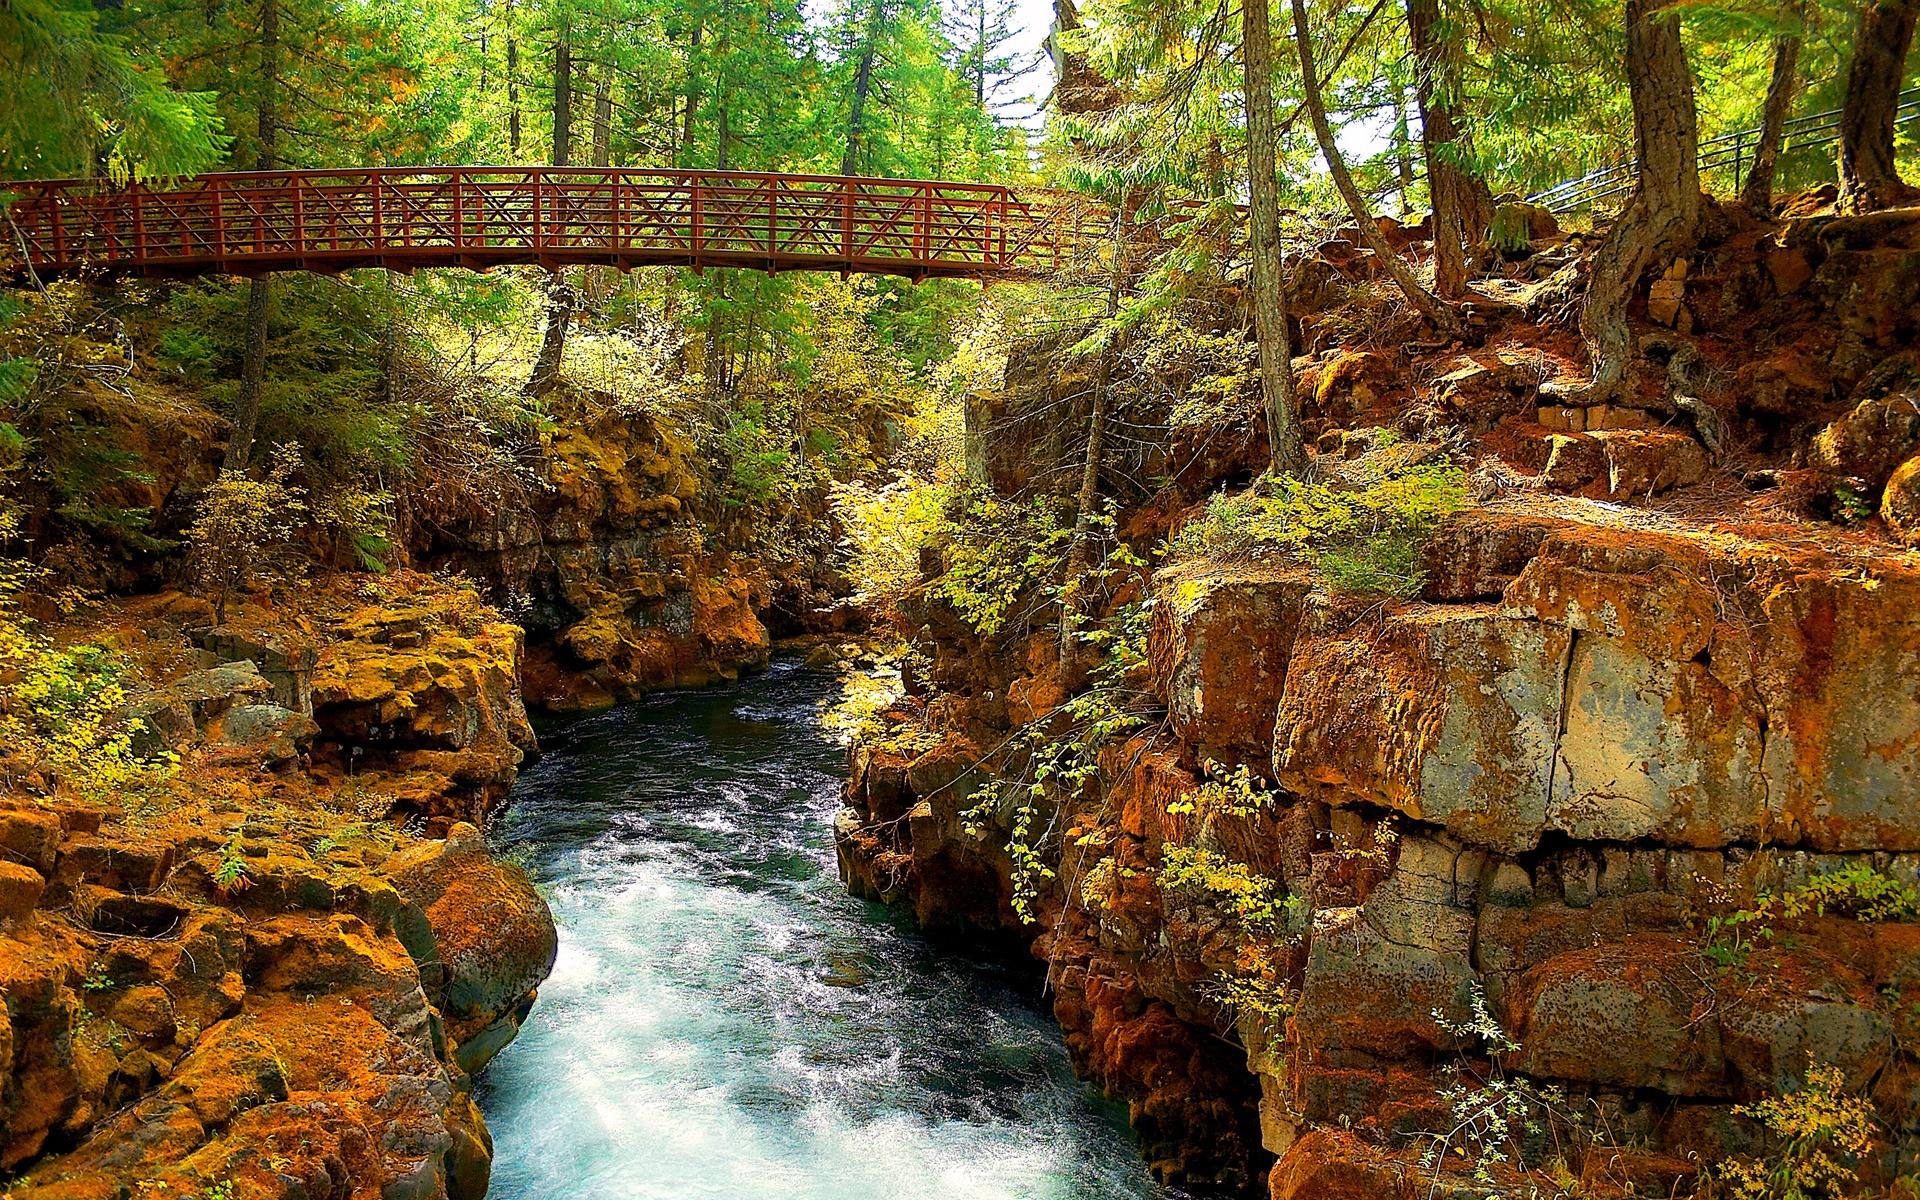 Forest river wallpaper rivers nature wallpapers for free download